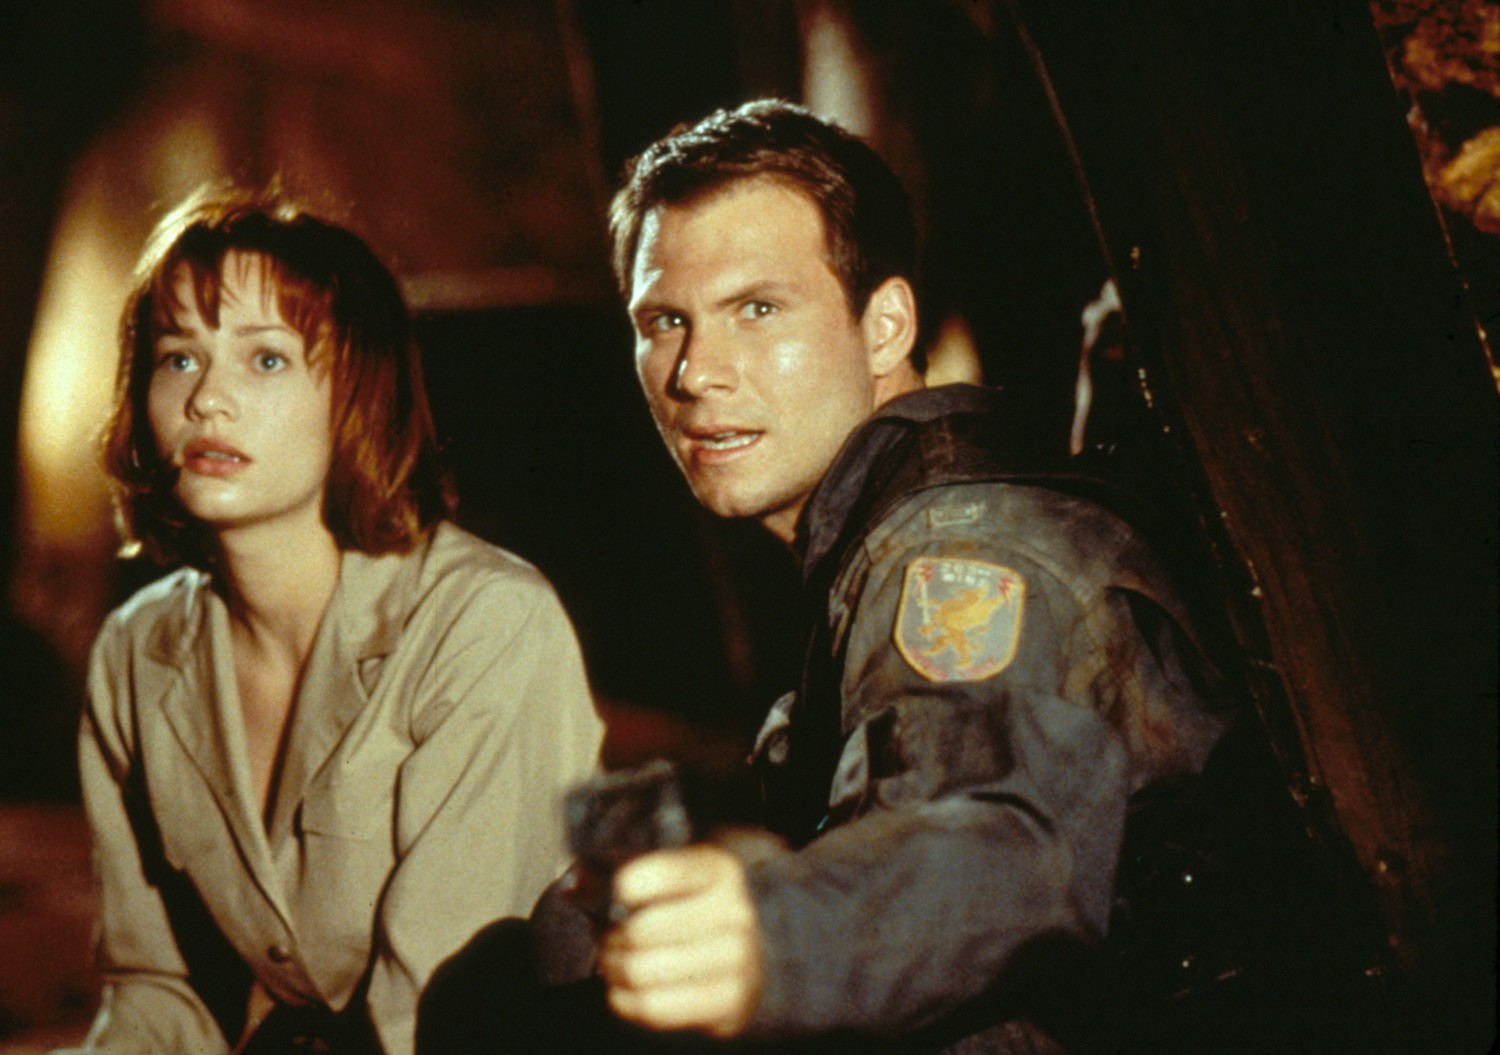 Christian Slater,Samantha Mathis